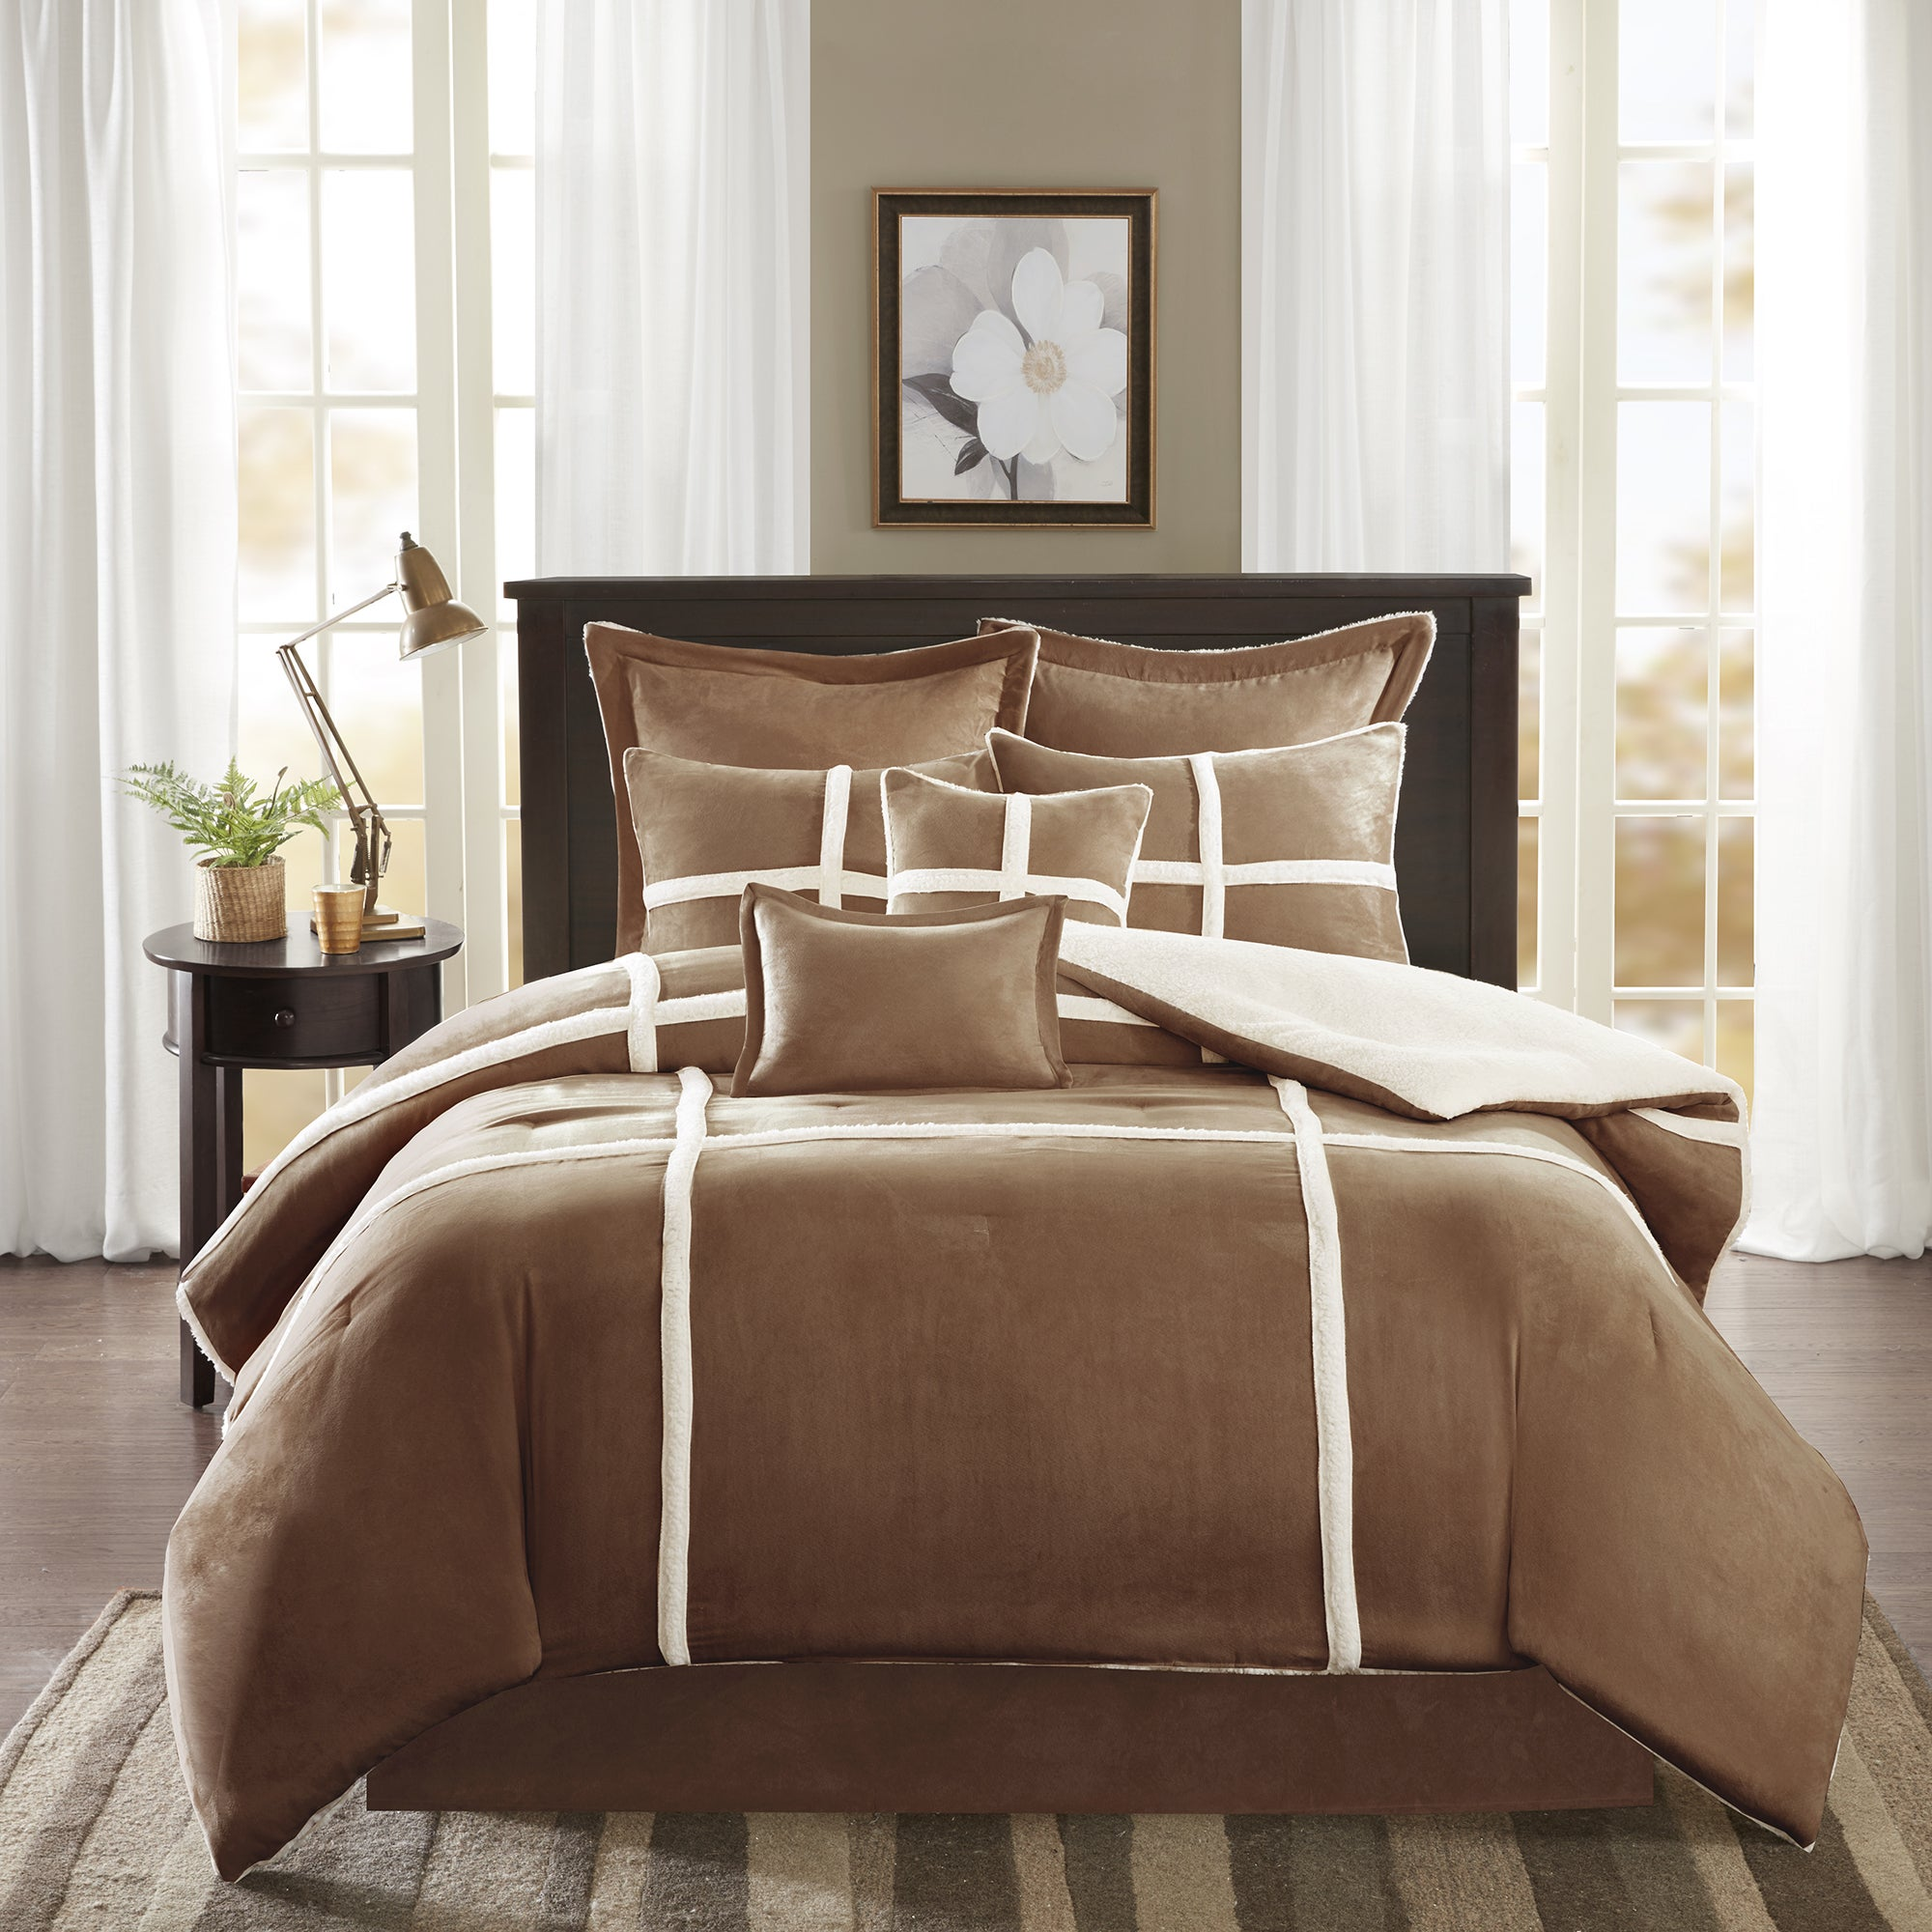 vcny bath product piece mink comforter sherpa bedding micro suede free on shipping set home